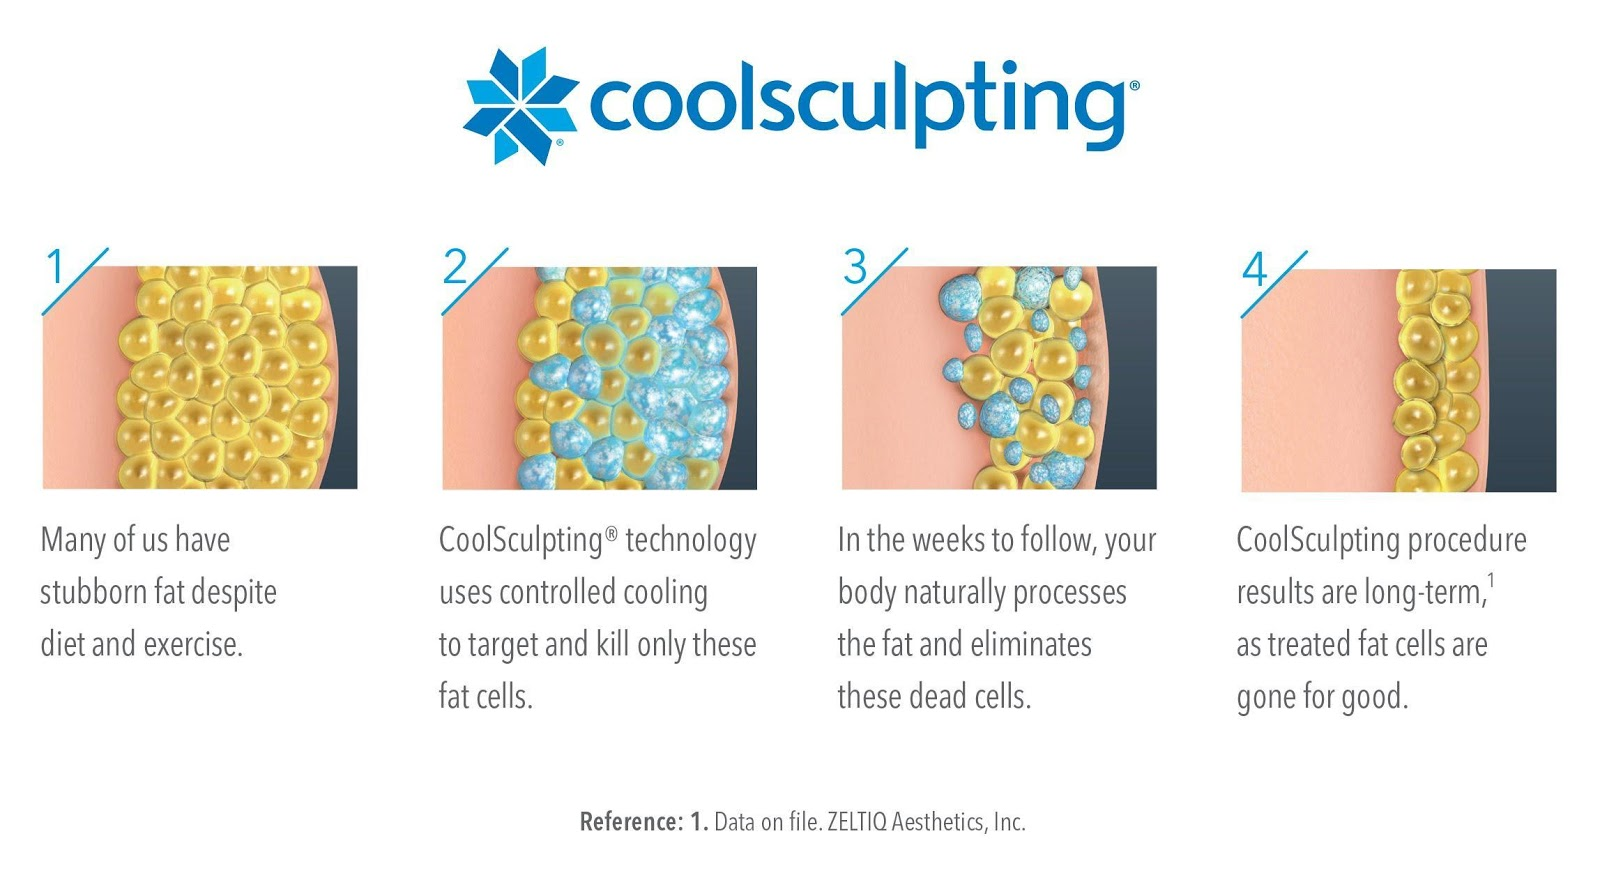 how does coolsculpting work